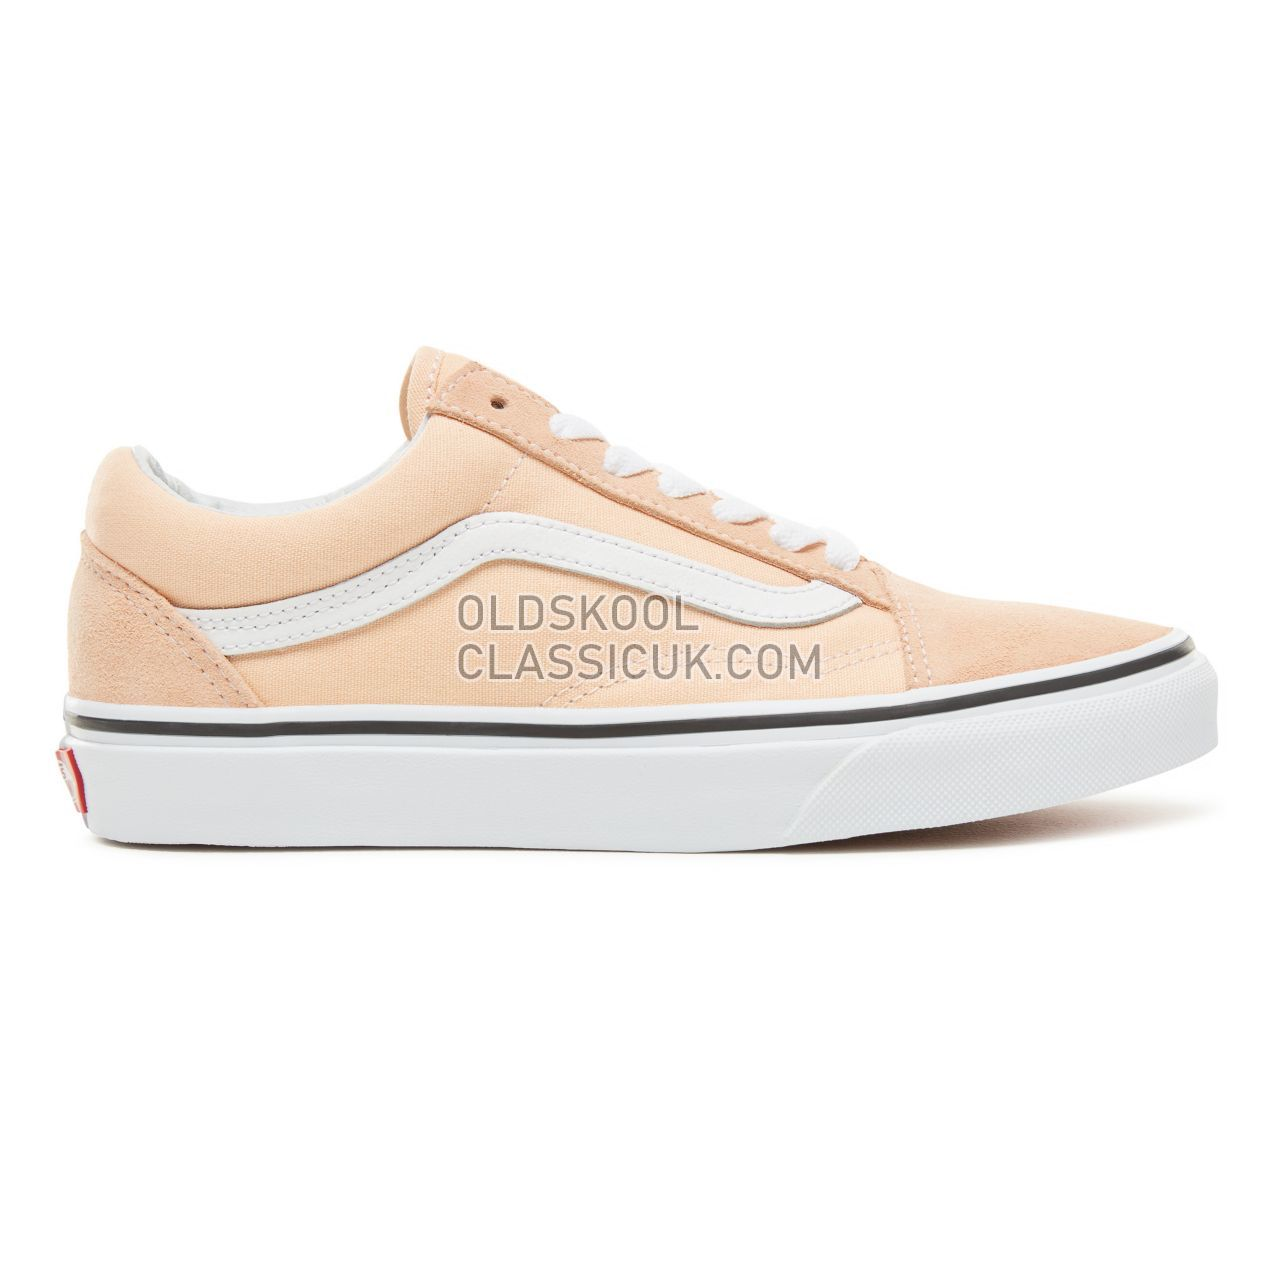 Vans Color Theory Old Skool Sneakers (Unisex) Mens Womens Unisex Bleached Apricot/True White VA38G1U5Y Shoes